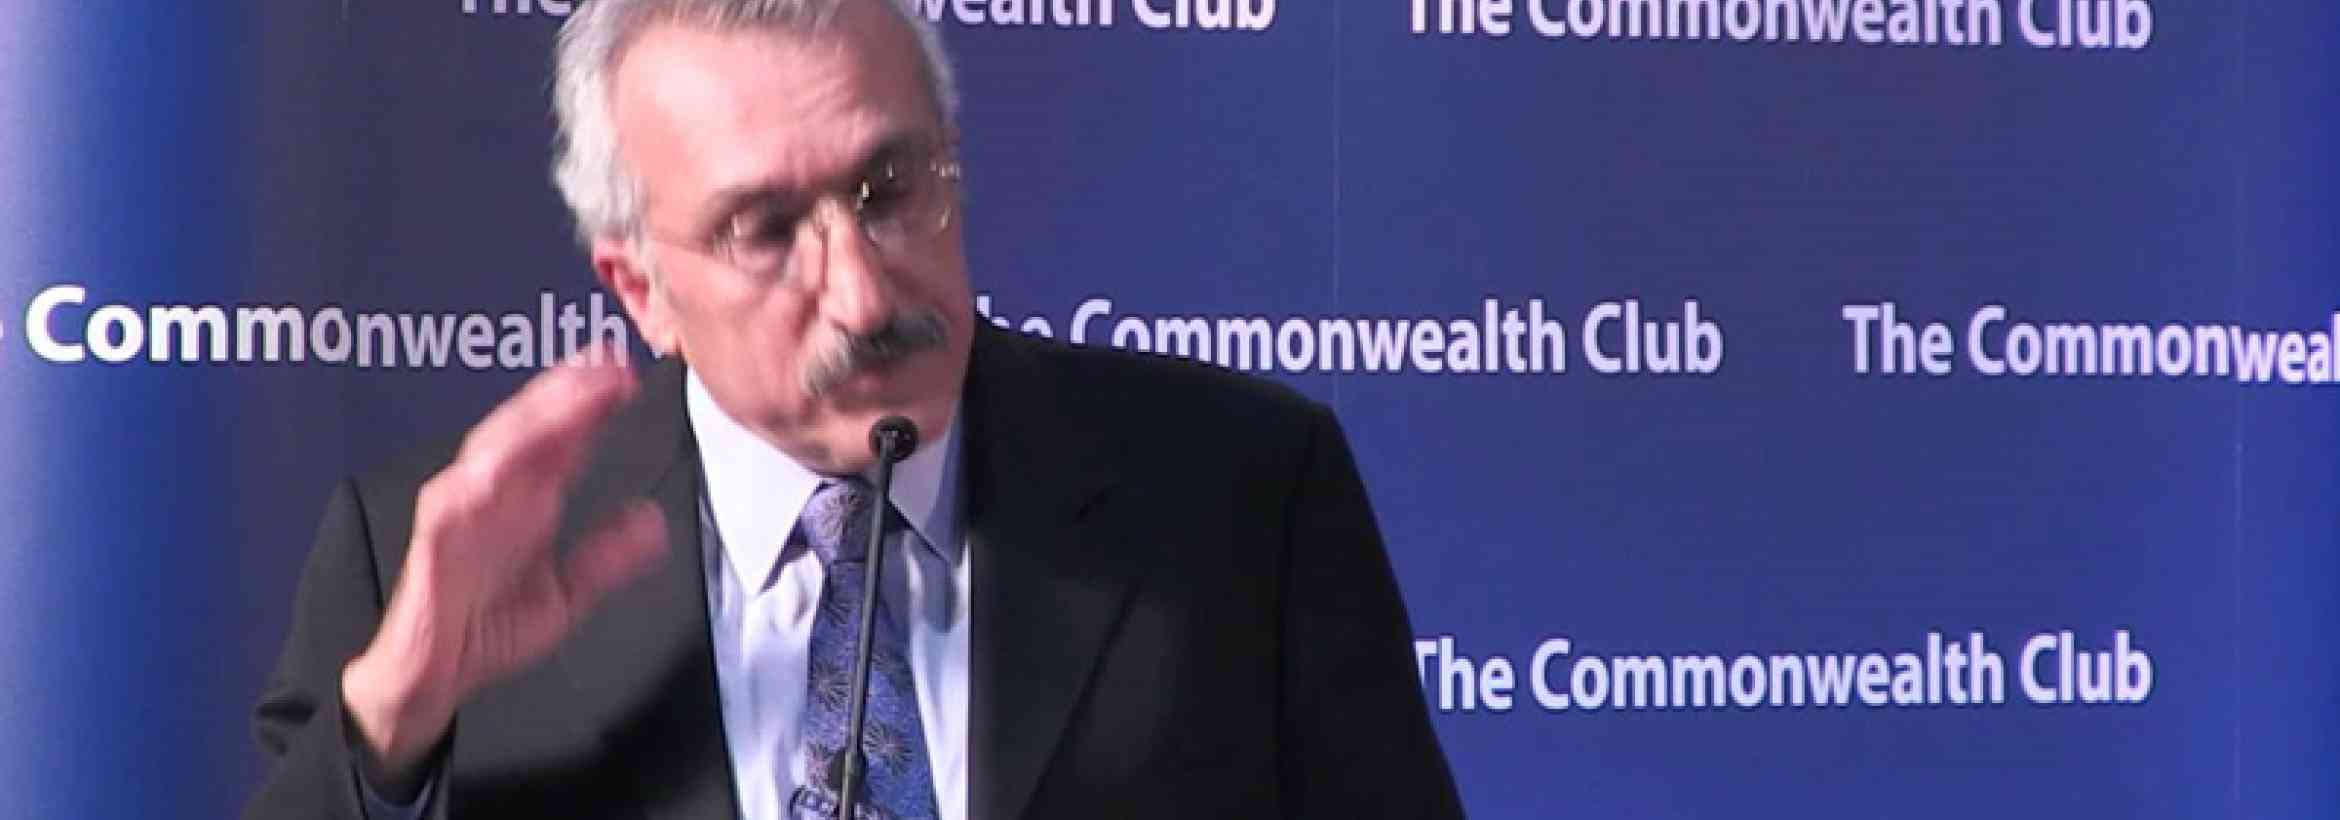 Abbas Milani at CommomWealthClub